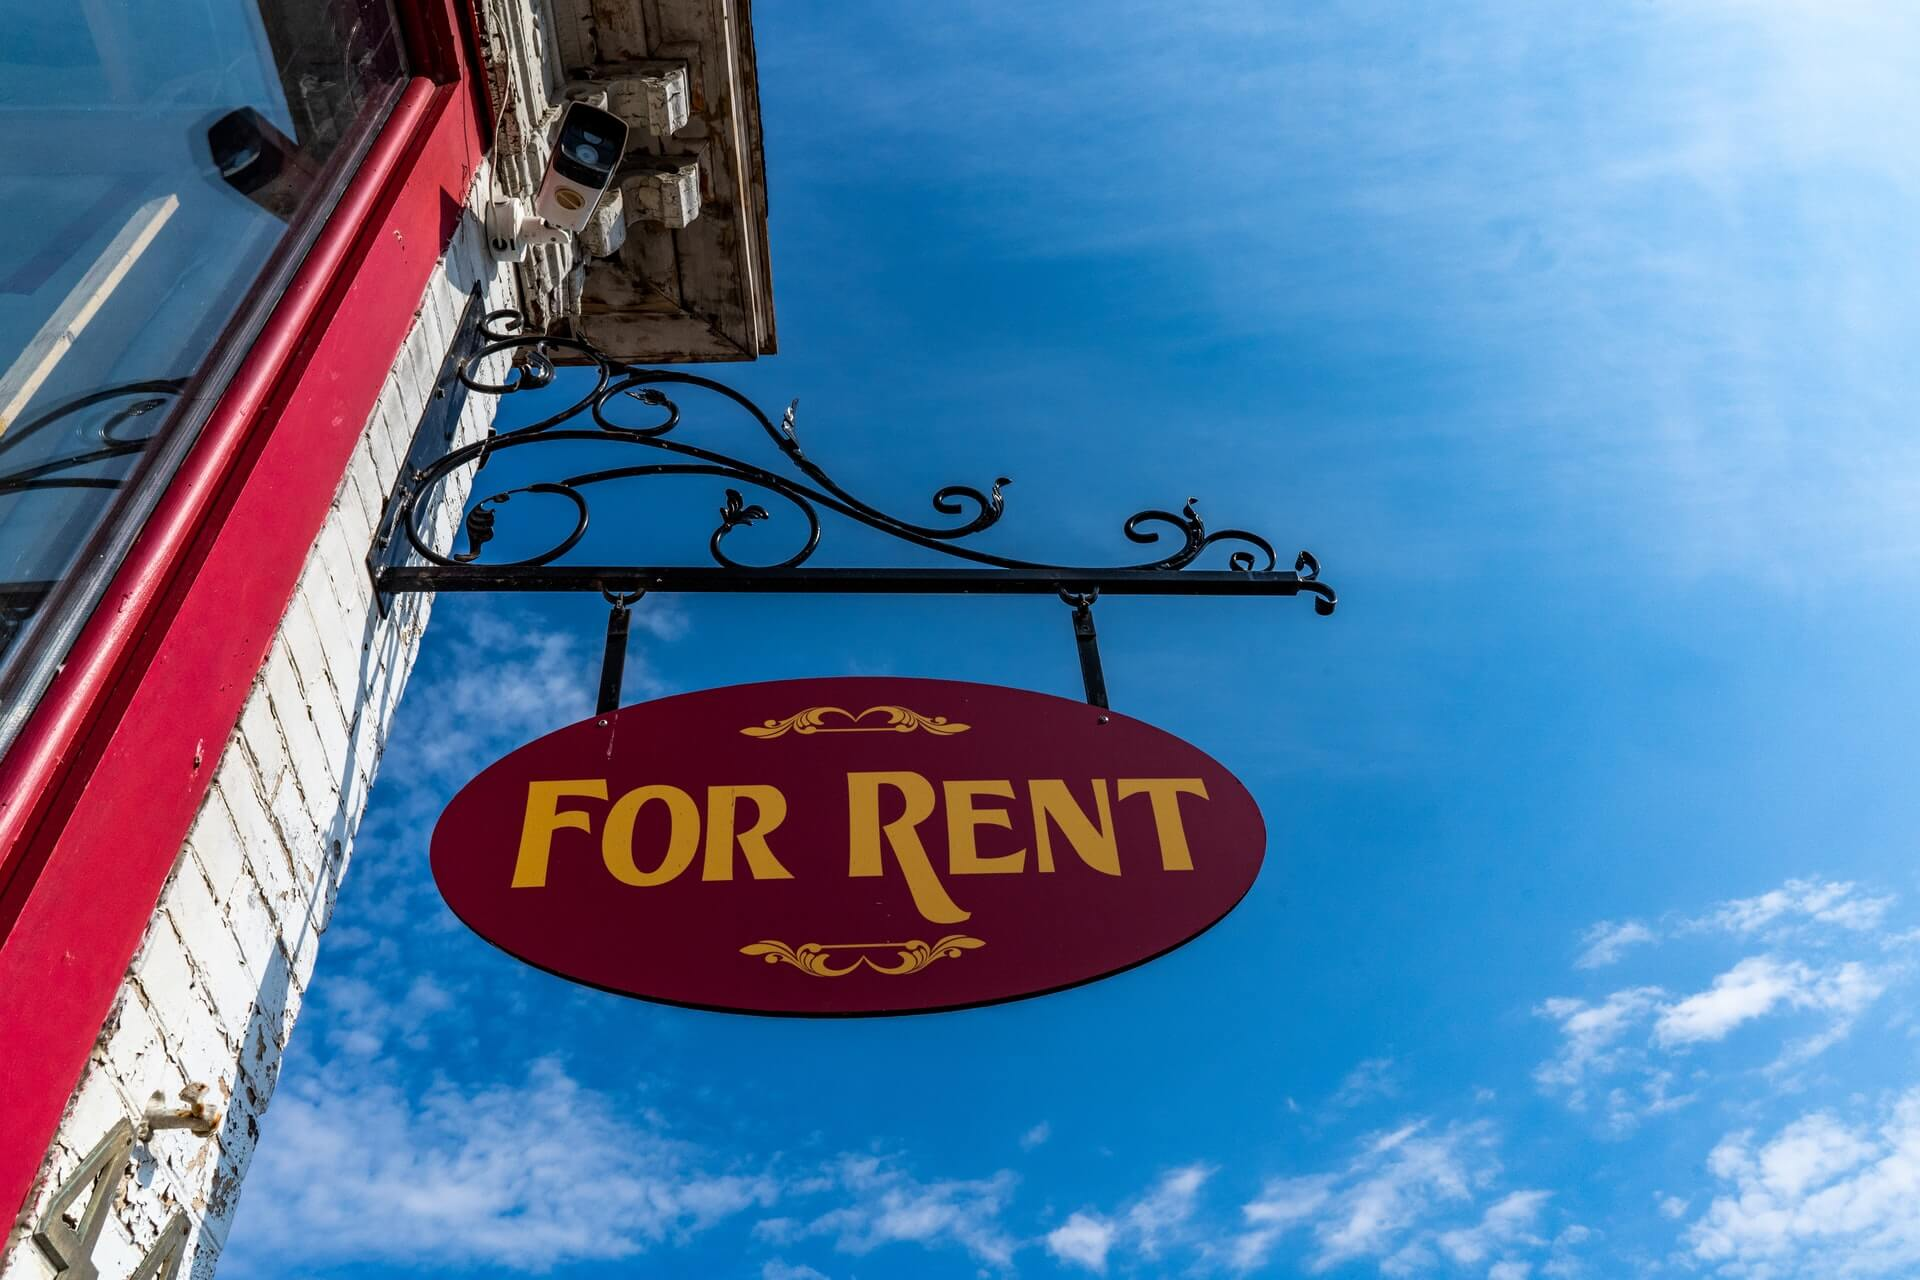 Commercial tenancy relief for small businesses